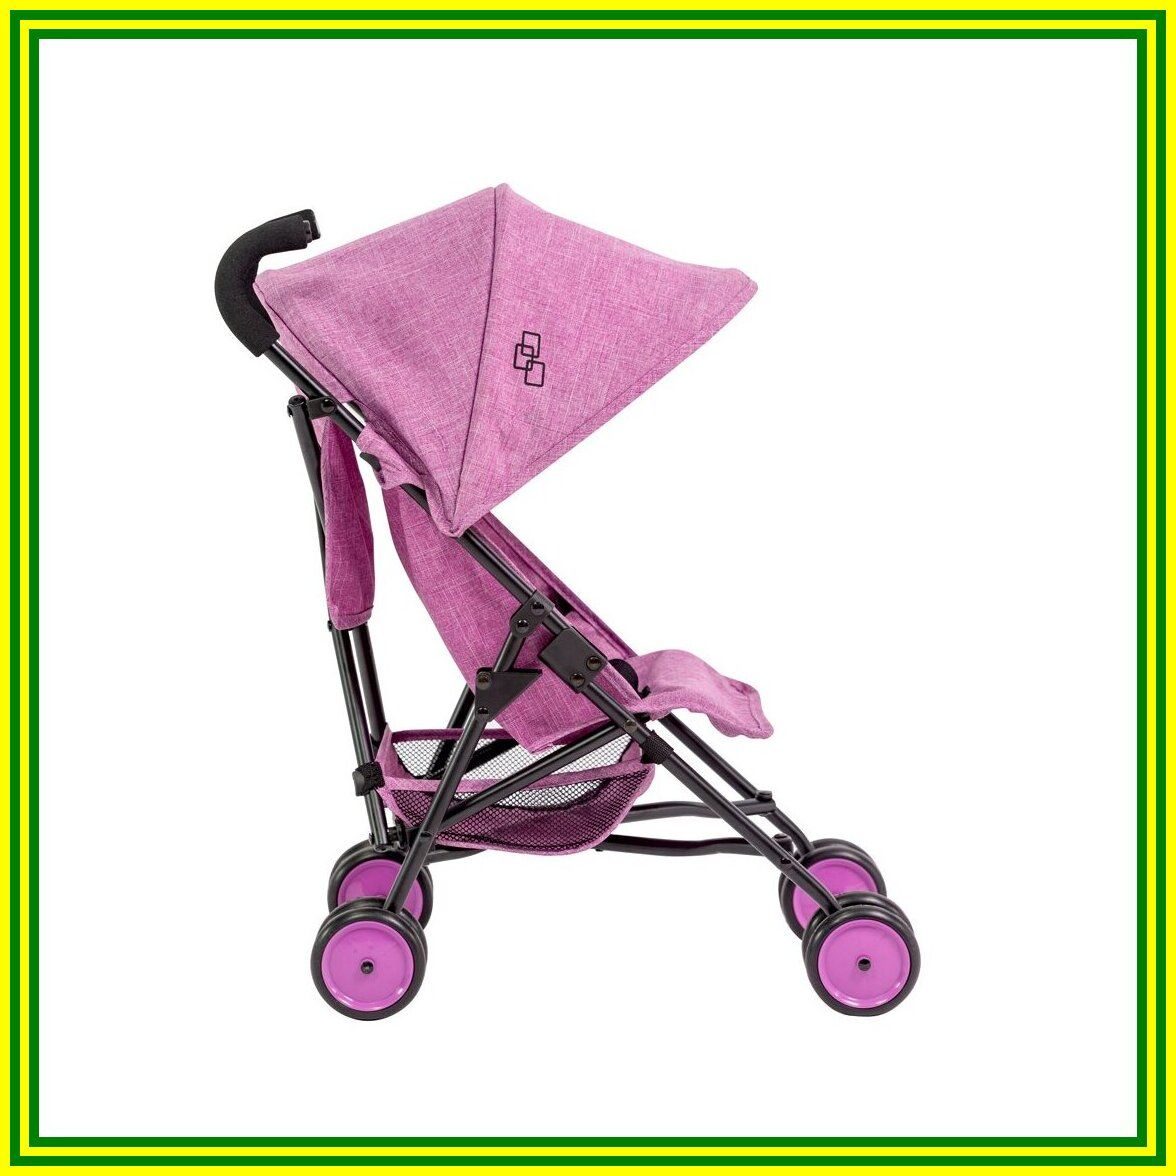 82 reference of baby trend stroller purple in 2020 Baby